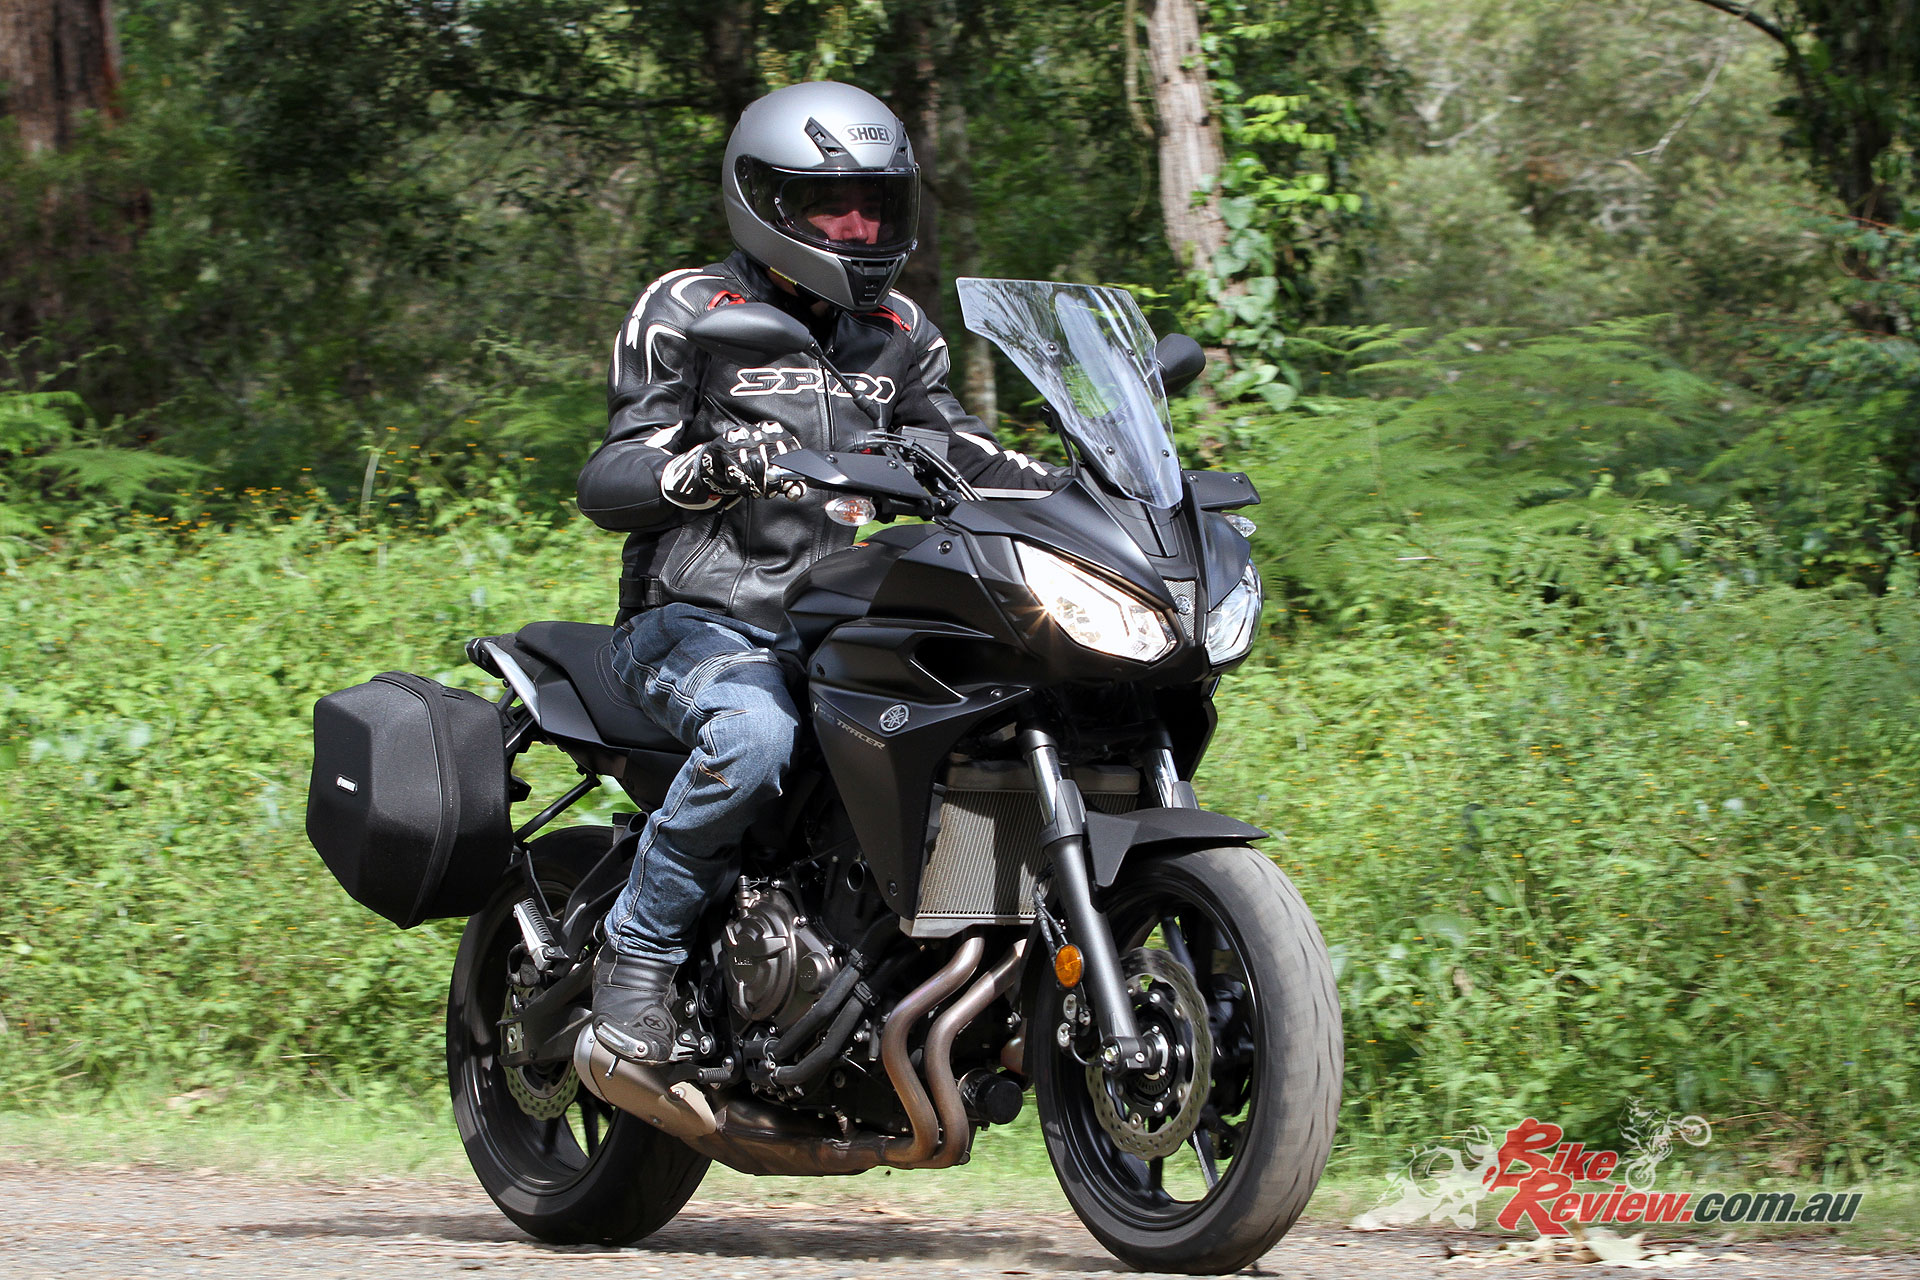 Review: 2017 Yamaha MT-07 Tracer LAMS - Bike Review